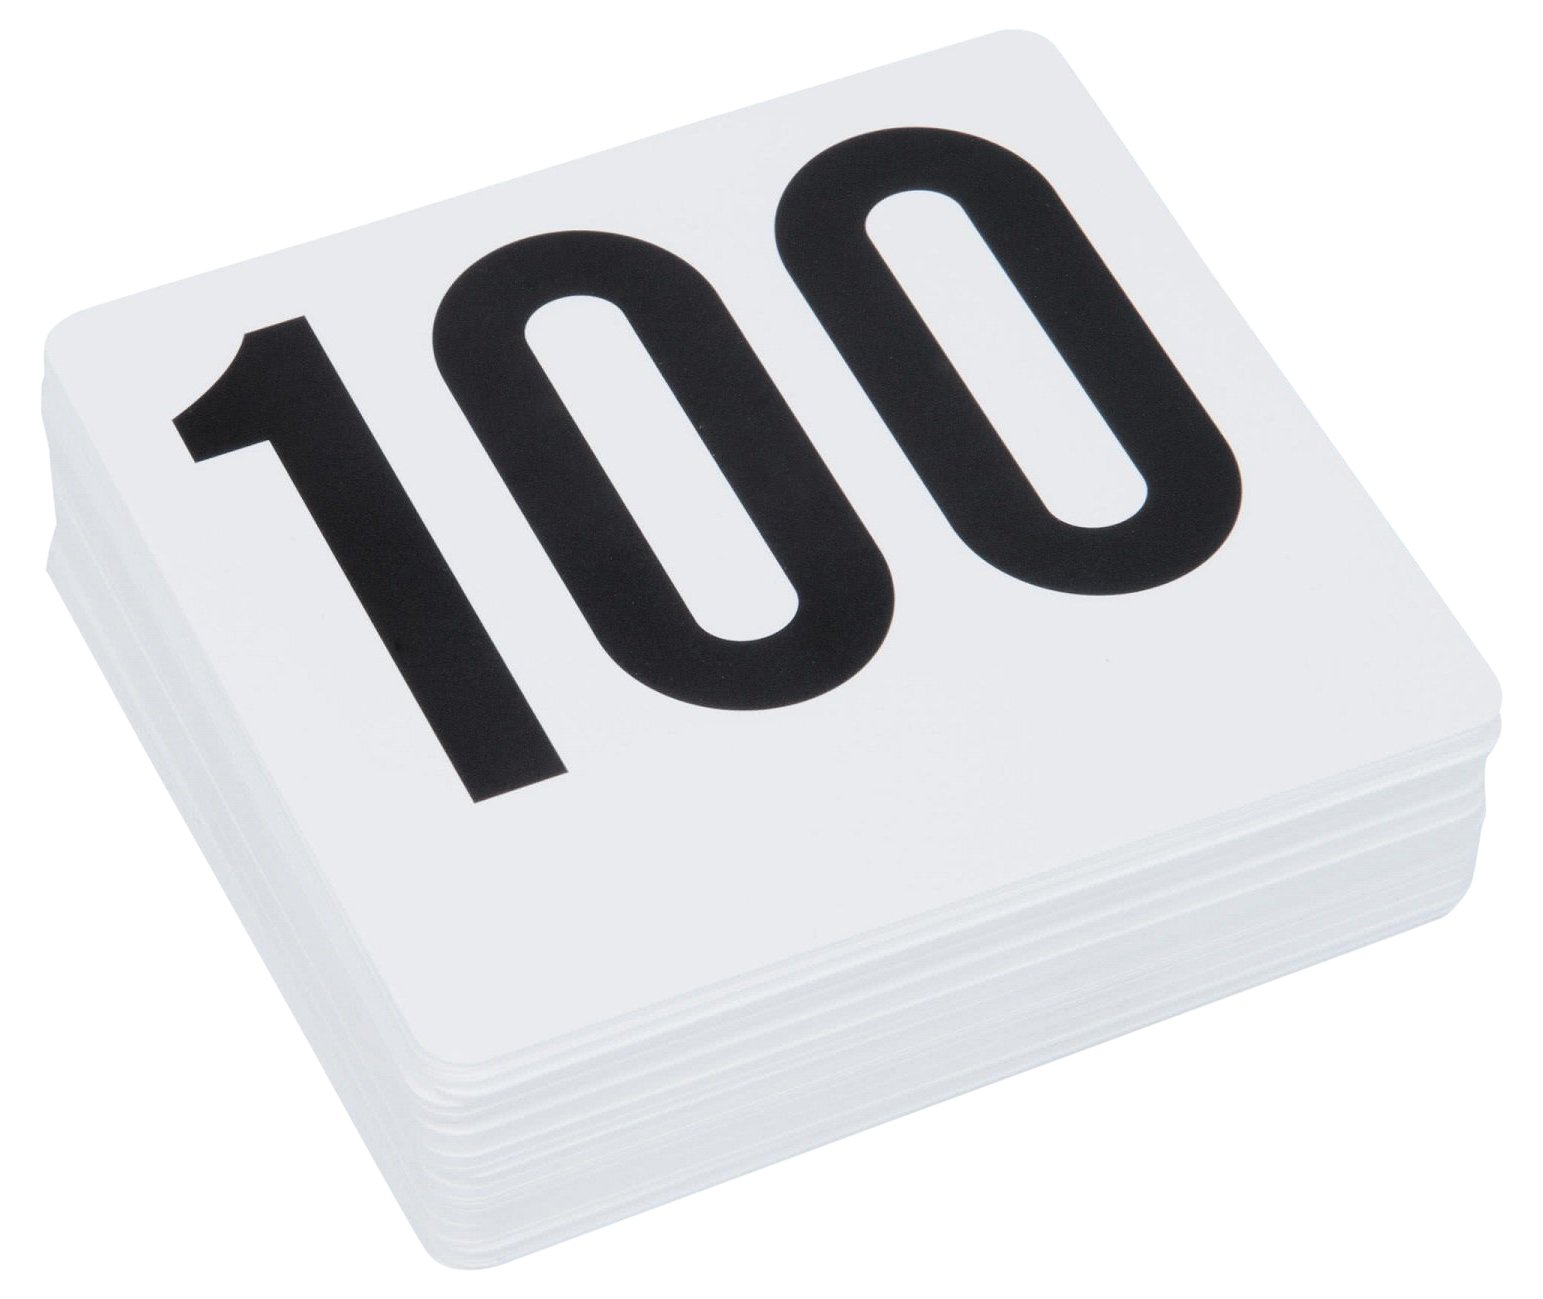 ROY TN 1 100 -Royal Industries Number 1-100 Plastic Number Card Set, Plastic, 4'' by 4'', White Base with Black Numbers